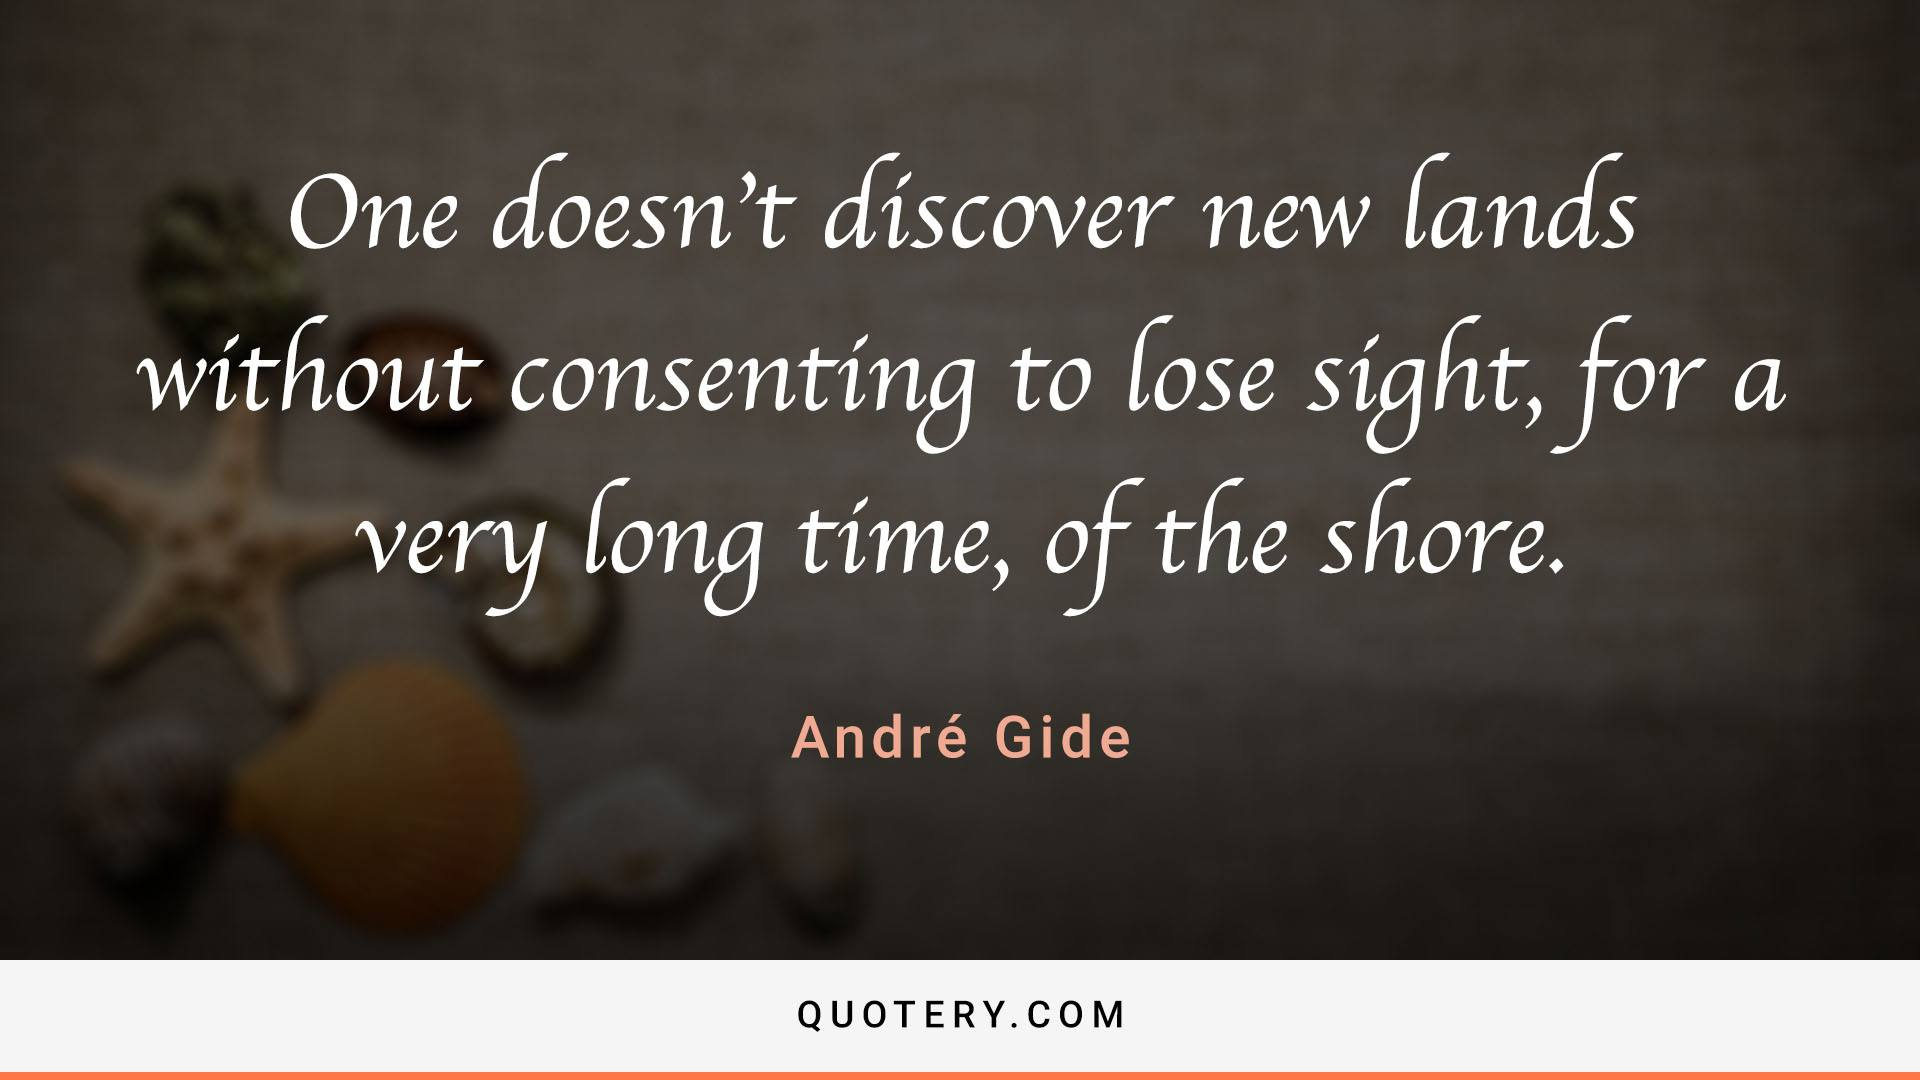 """""""One doesn't discover new lands without consenting to lose sight, for a very long time, of the shore."""" — André Gide"""